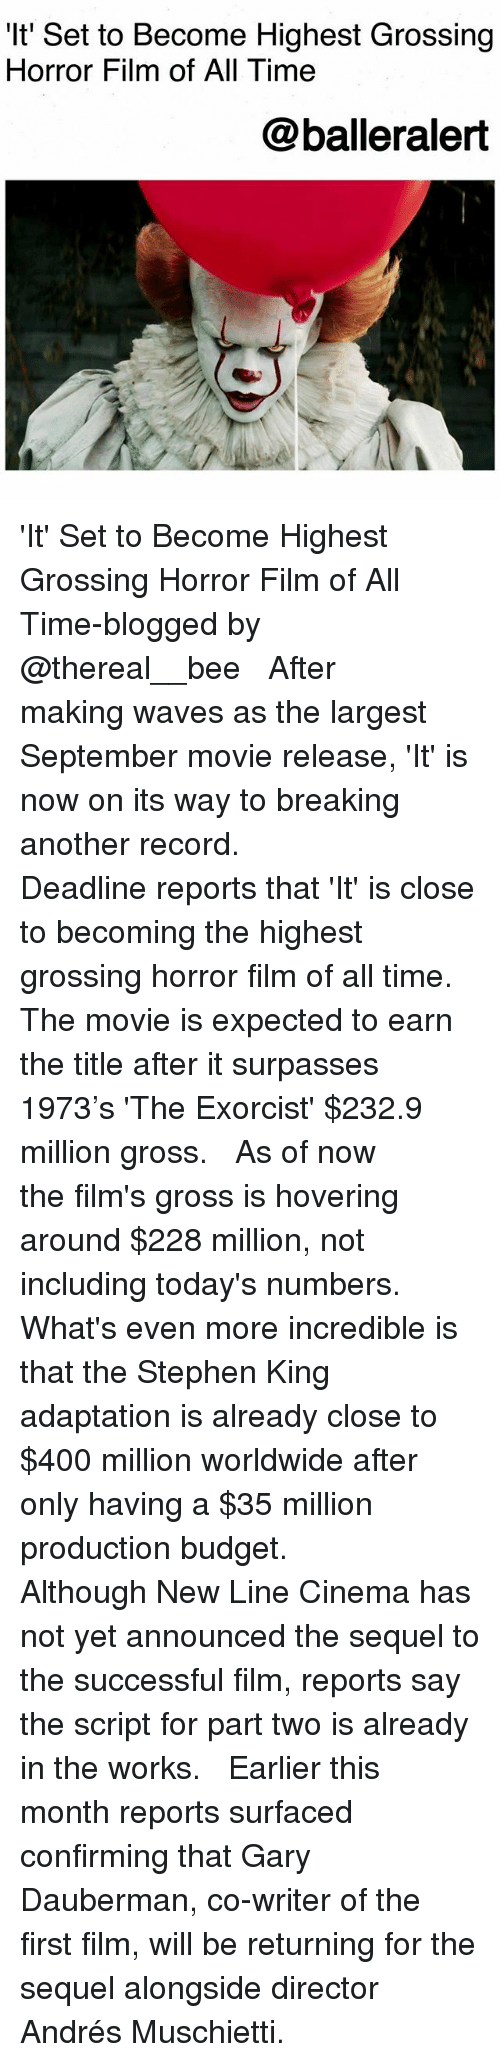 Memes, Stephen, and Waves: 'It' Set to Become Highest Grossing  Horror Film of All Time  @balleralert 'It' Set to Become Highest Grossing Horror Film of All Time-blogged by @thereal__bee ⠀⠀⠀⠀⠀⠀⠀⠀⠀ ⠀⠀ After making waves as the largest September movie release, 'It' is now on its way to breaking another record. ⠀⠀⠀⠀⠀⠀⠀⠀⠀ ⠀⠀ Deadline reports that 'It' is close to becoming the highest grossing horror film of all time. The movie is expected to earn the title after it surpasses 1973's 'The Exorcist' $232.9 million gross. ⠀⠀⠀⠀⠀⠀⠀⠀⠀ ⠀⠀ As of now the film's gross is hovering around $228 million, not including today's numbers. What's even more incredible is that the Stephen King adaptation is already close to $400 million worldwide after only having a $35 million production budget. ⠀⠀⠀⠀⠀⠀⠀⠀⠀ ⠀⠀ Although New Line Cinema has not yet announced the sequel to the successful film, reports say the script for part two is already in the works. ⠀⠀⠀⠀⠀⠀⠀⠀⠀ ⠀⠀ Earlier this month reports surfaced confirming that Gary Dauberman, co-writer of the first film, will be returning for the sequel alongside director Andrés Muschietti.